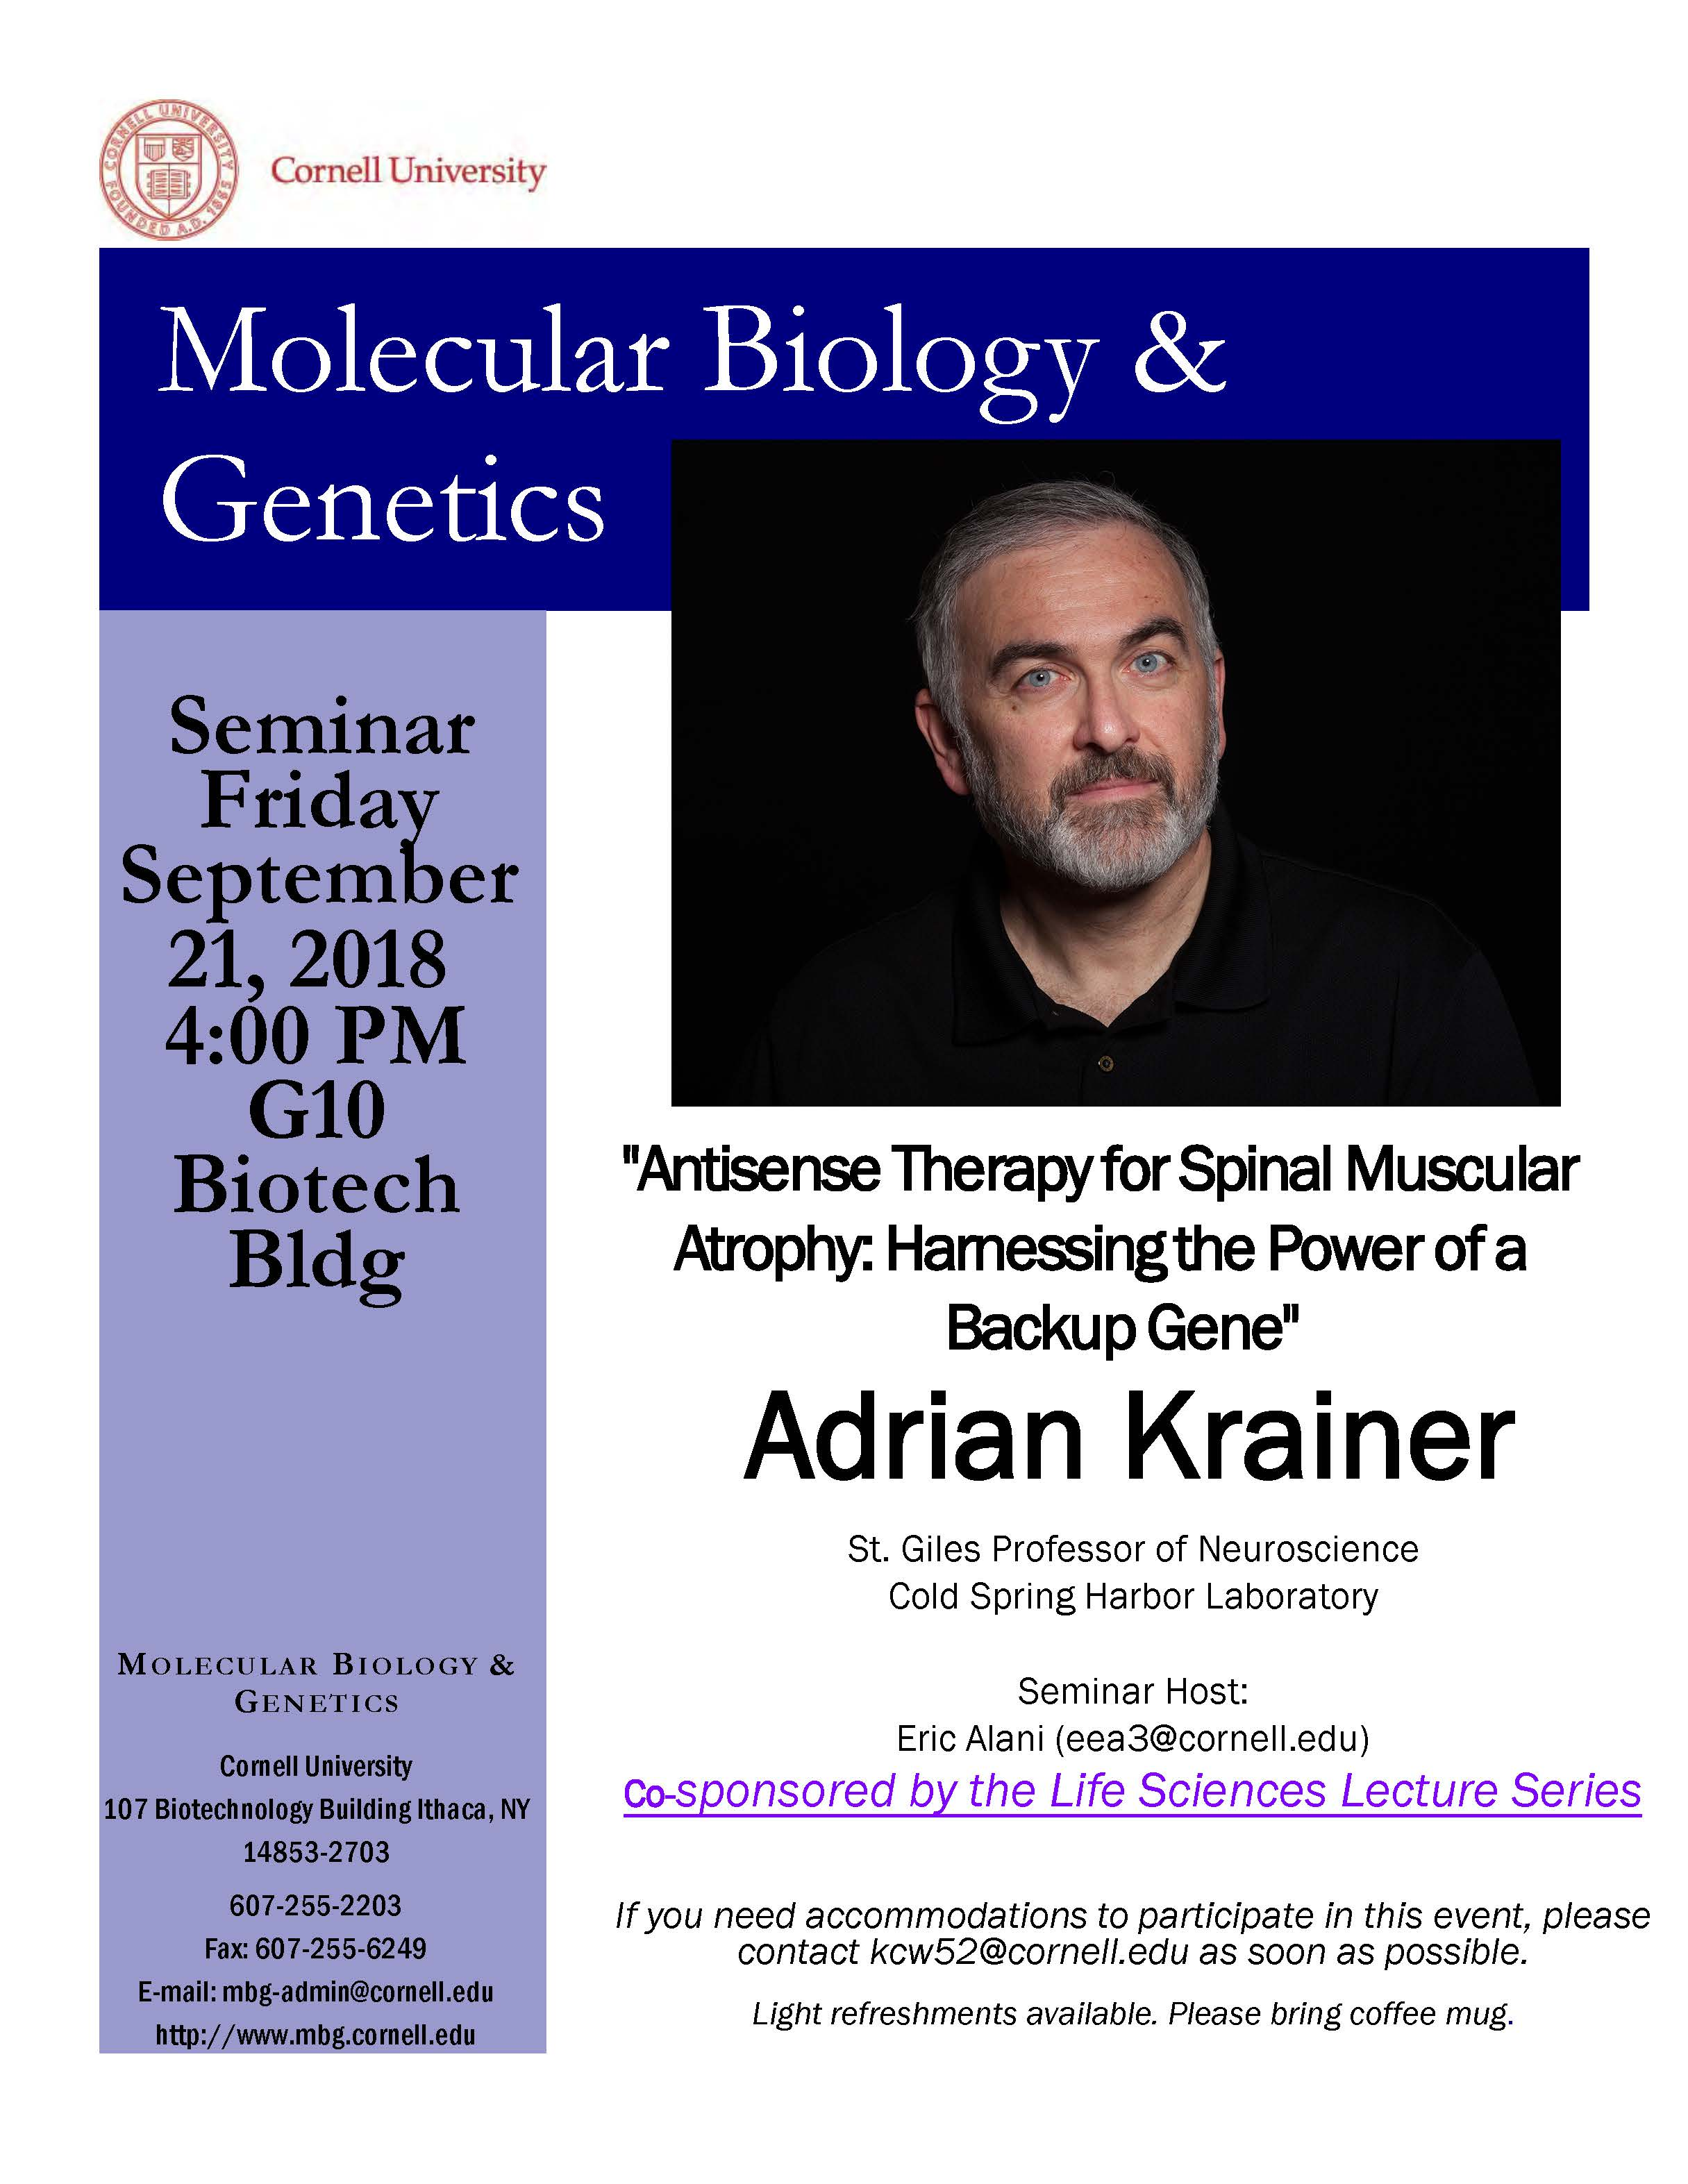 """MBG Friday Seminar with Adrian Krainer """"Antisense Therapy for Spinal Muscular Atrophy: Harnessing the Power of a Backup Gene"""""""